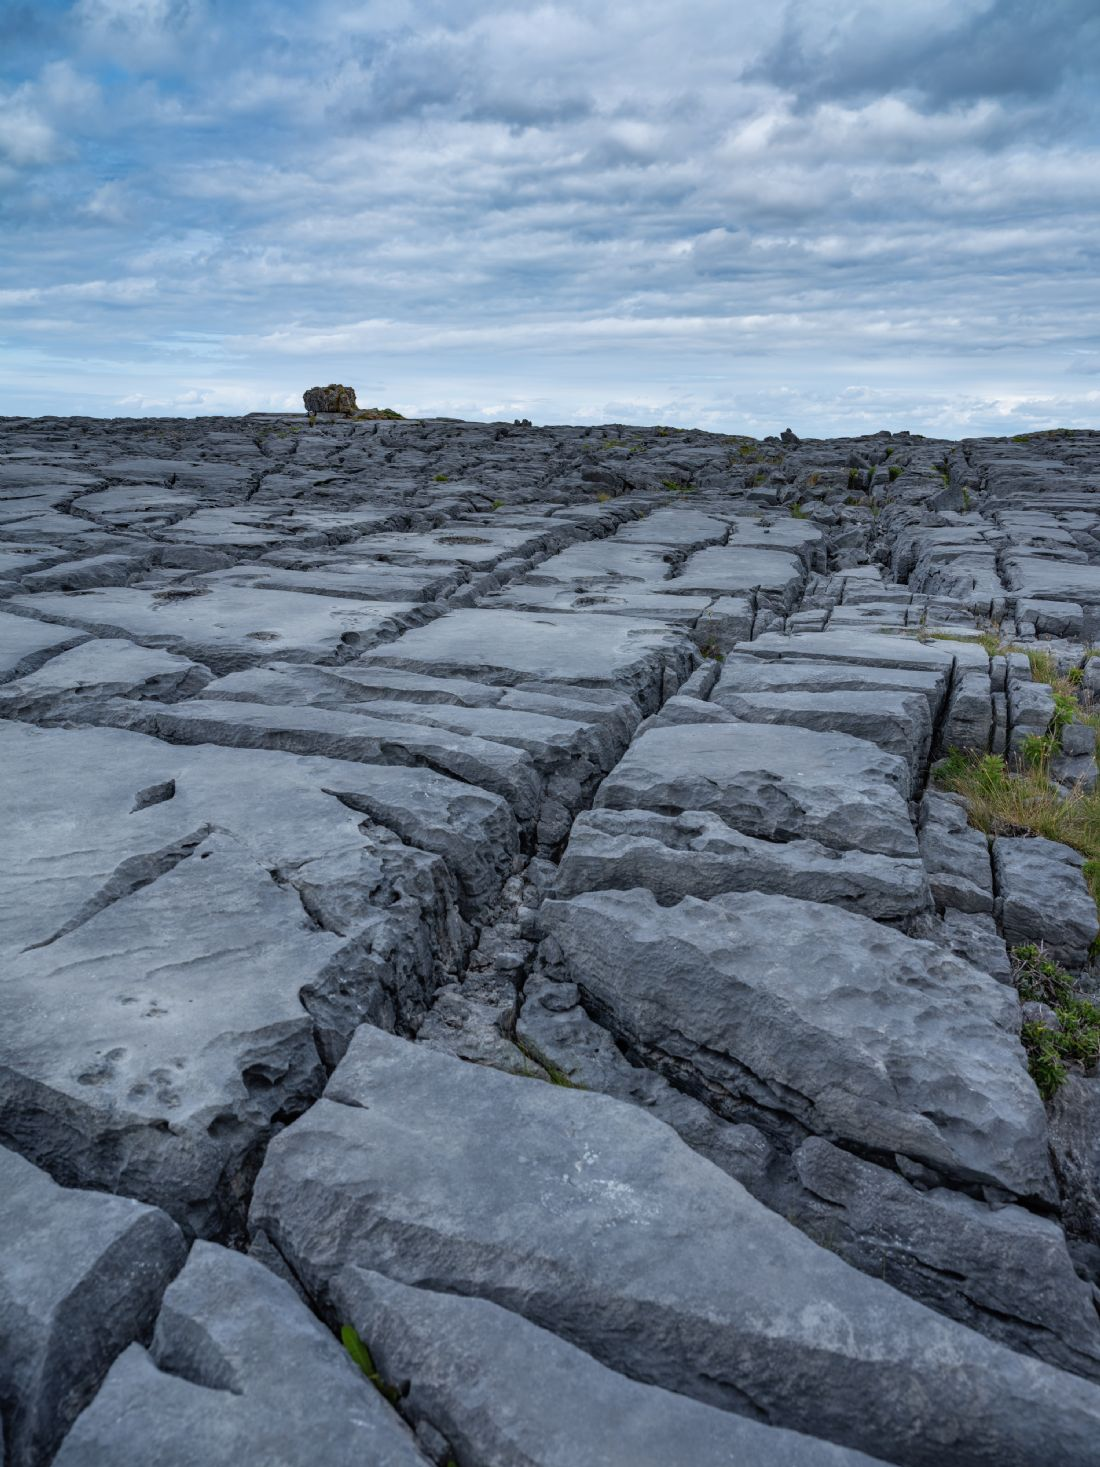 Christine Fitzgerald | The Burren, Co Clare